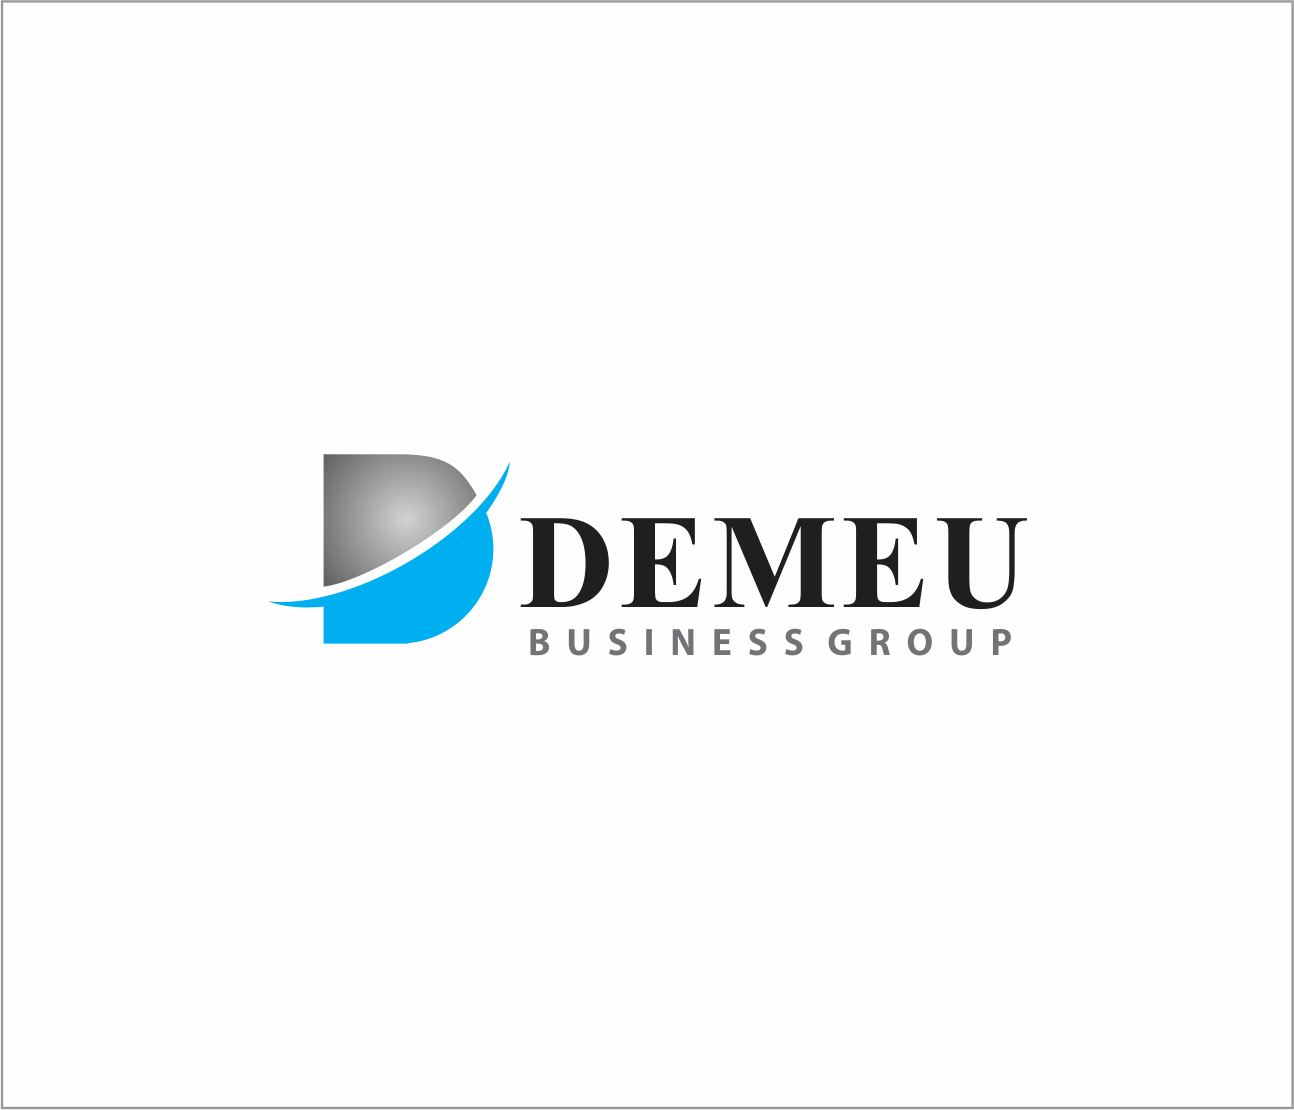 Logo Design by Armada Jamaluddin - Entry No. 126 in the Logo Design Contest Captivating Logo Design for DEMEU Business Group.